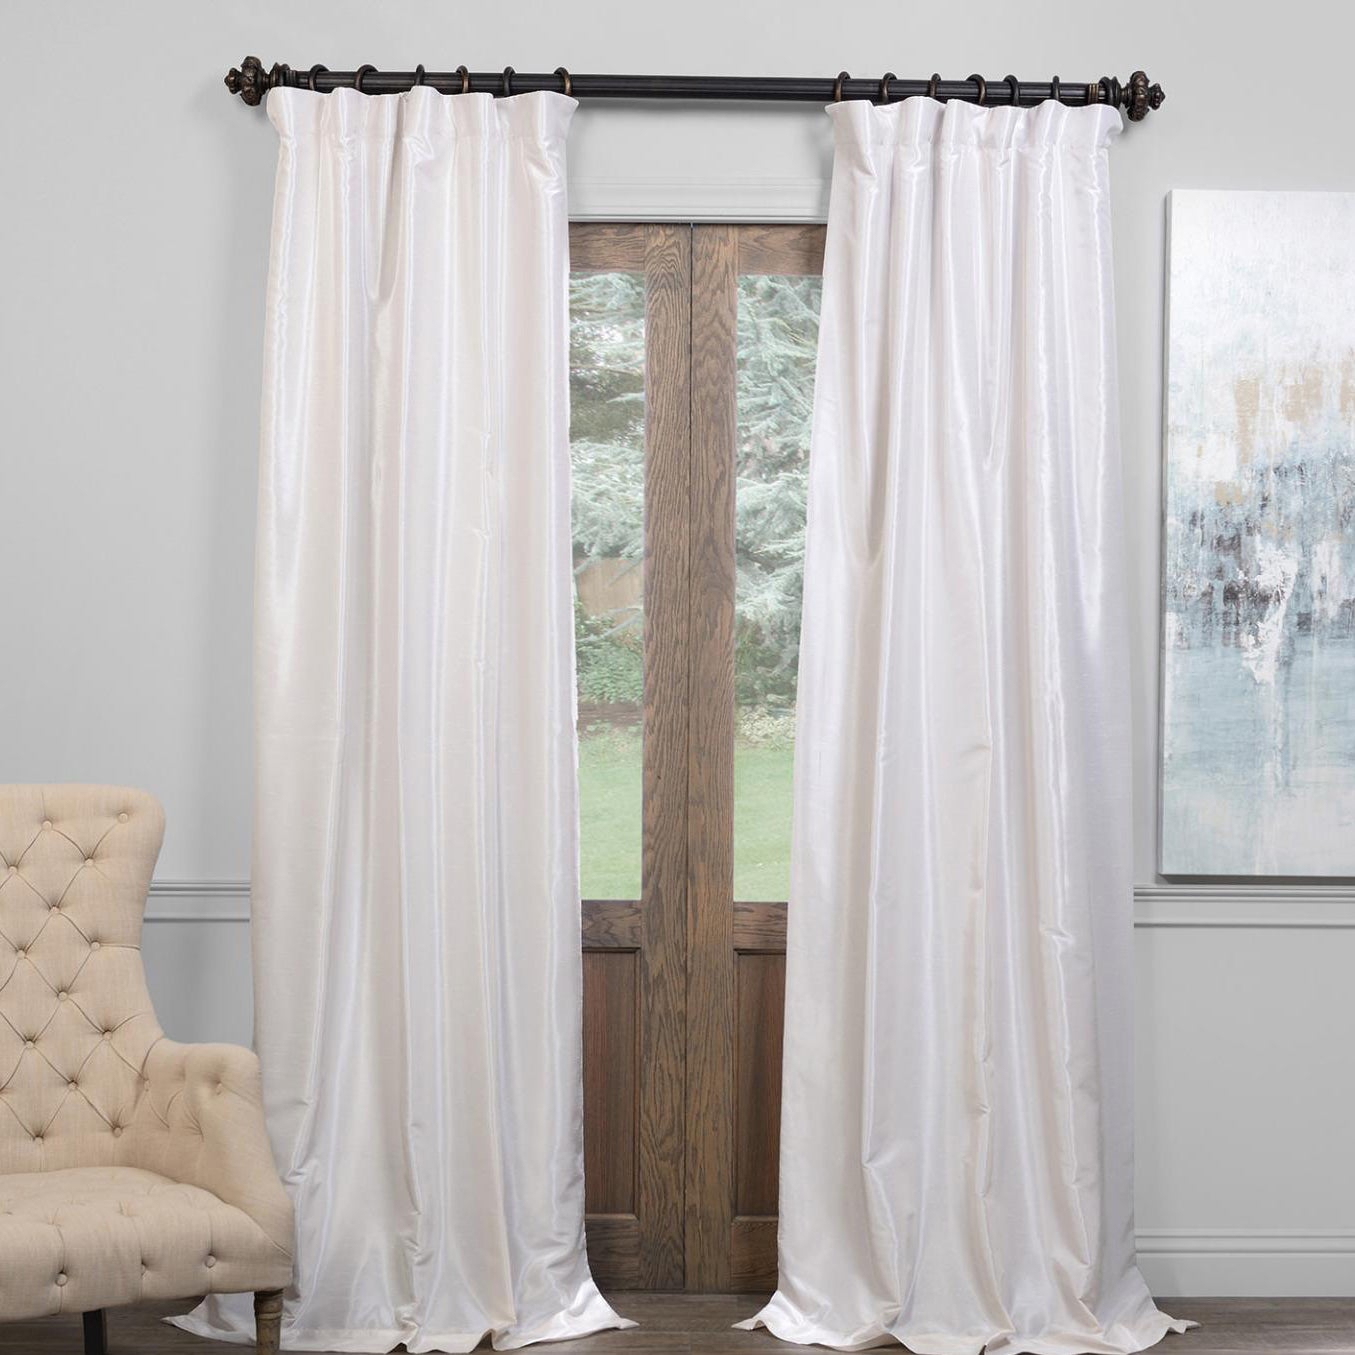 """Exclusive Fabrics True Blackout Vintage Textured Faux Dupioni Silk Curtain Panel In 108""""l In Off White (as Is) Inside Vintage Faux Textured Dupioni Silk Curtain Panels (View 11 of 30)"""